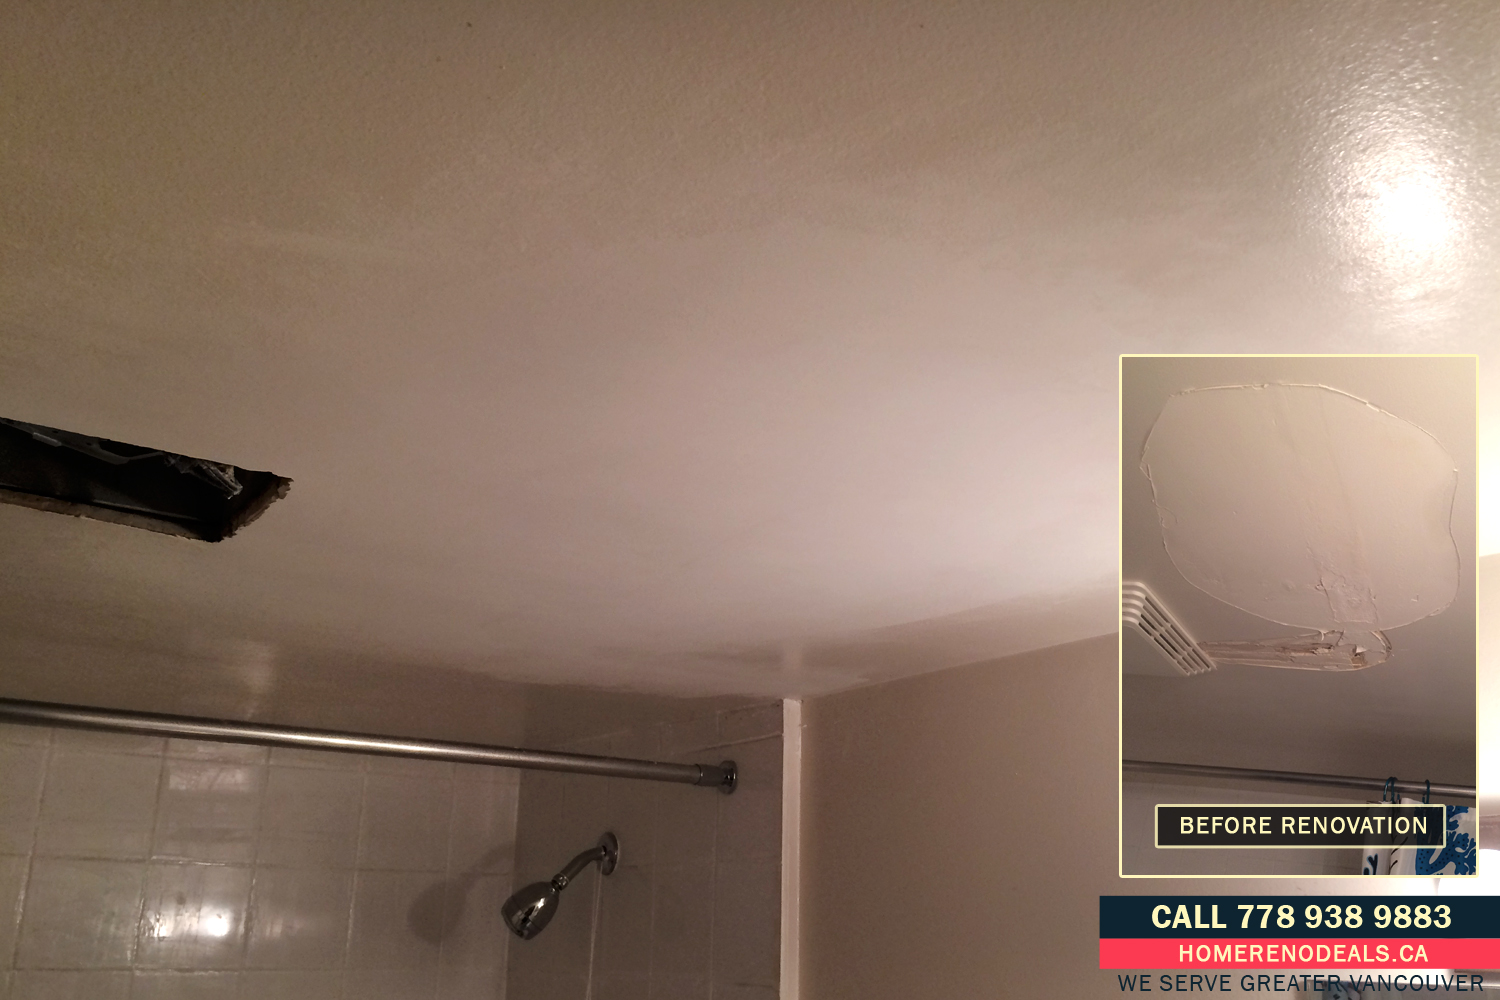 Water damage restoration for ceilings